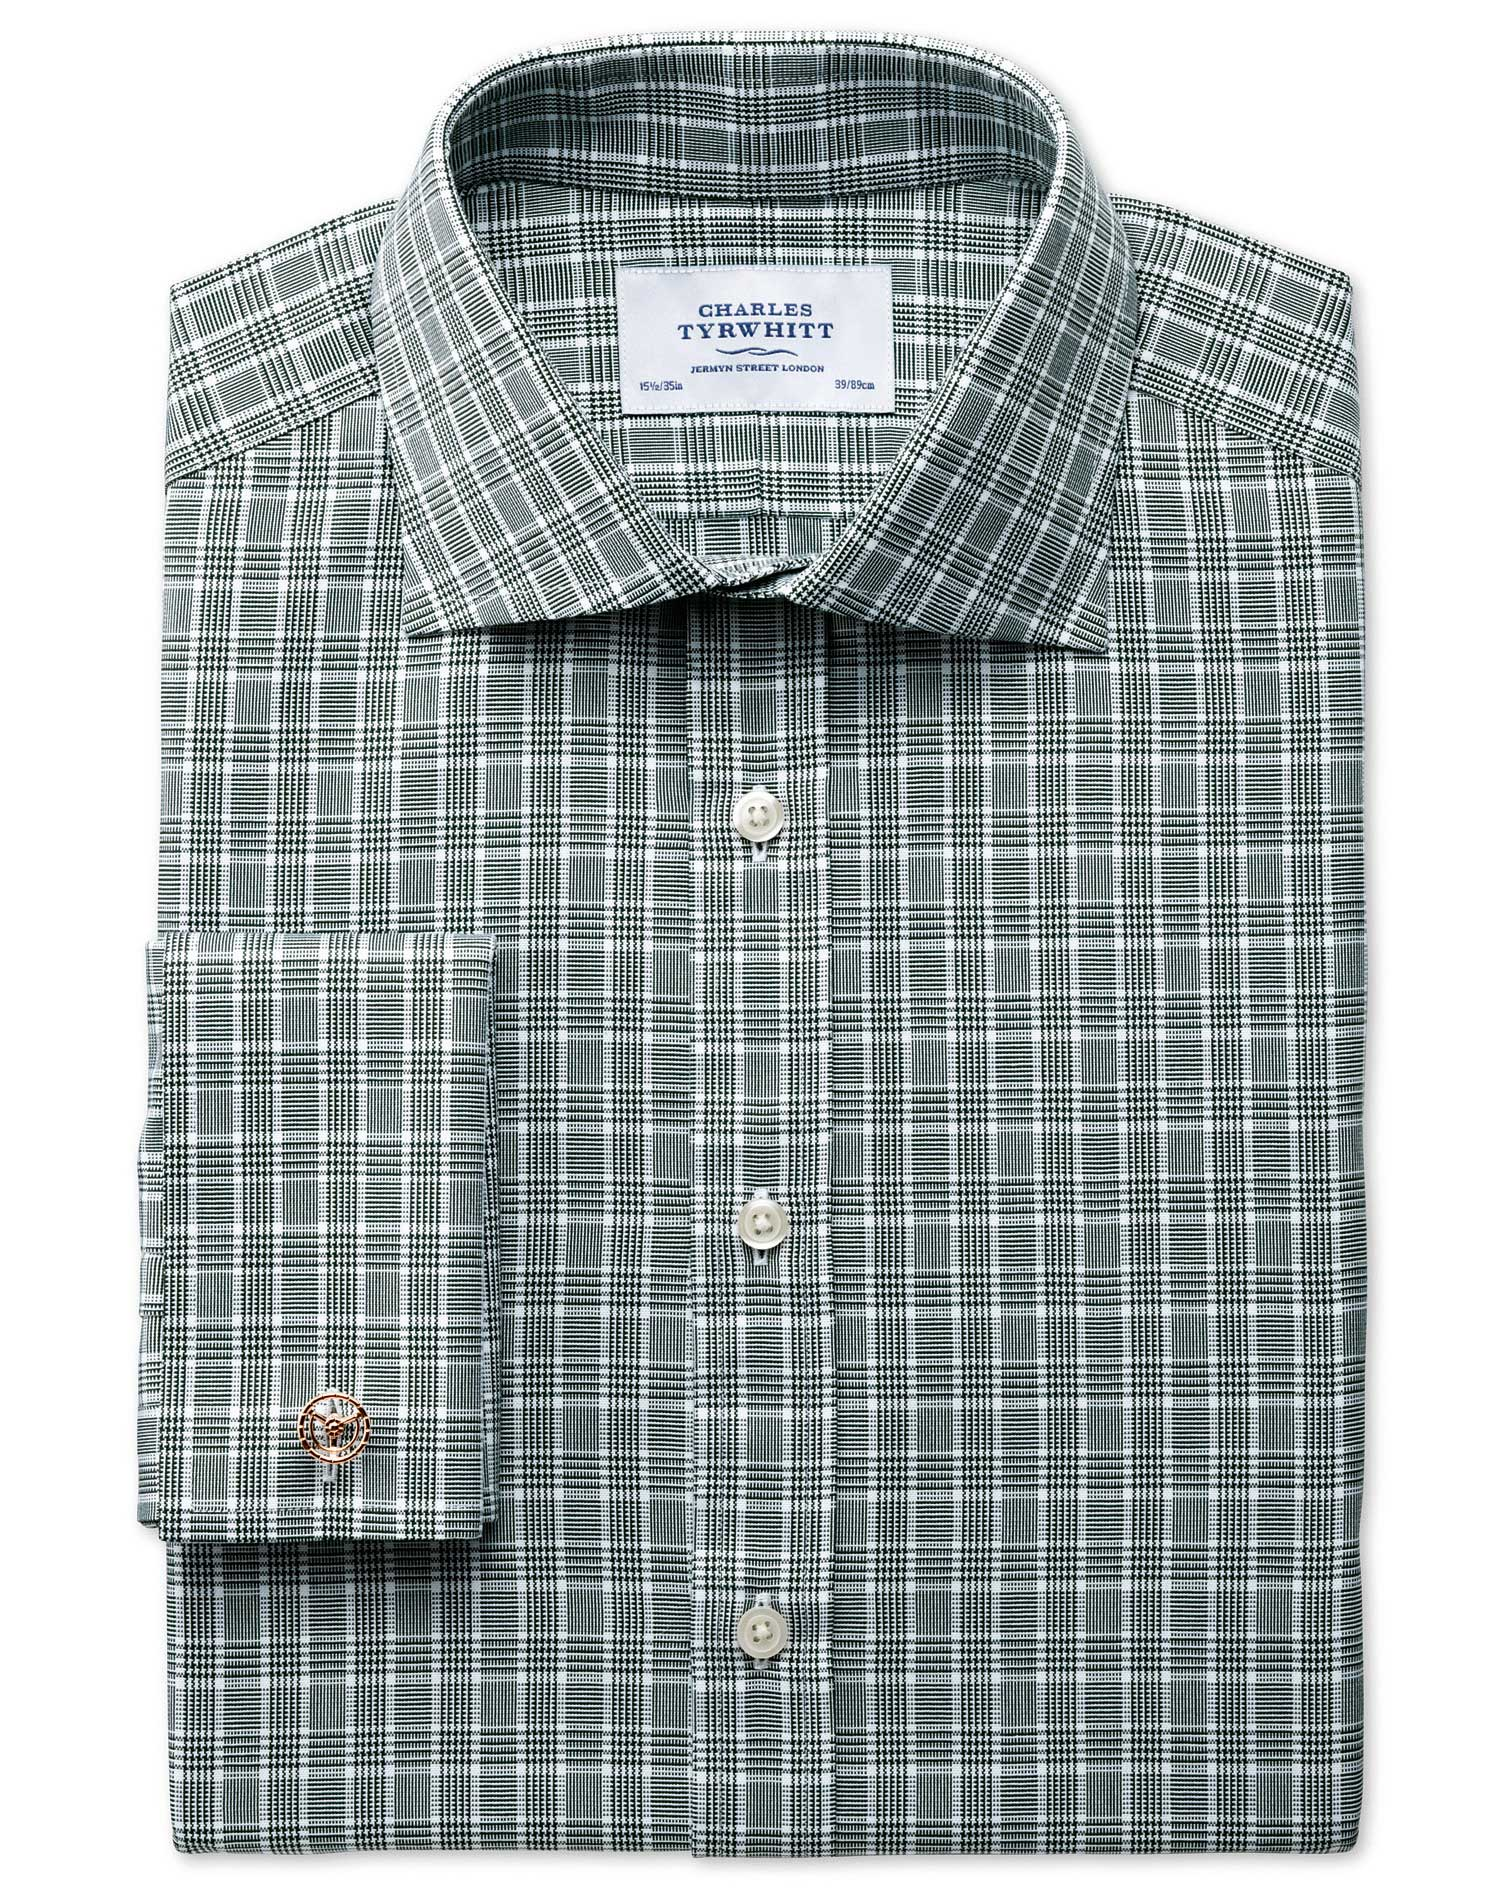 Extra Slim Fit Prince Of Wales Basketweave Green Cotton Formal Shirt Double Cuff Size 15.5/35 by Cha